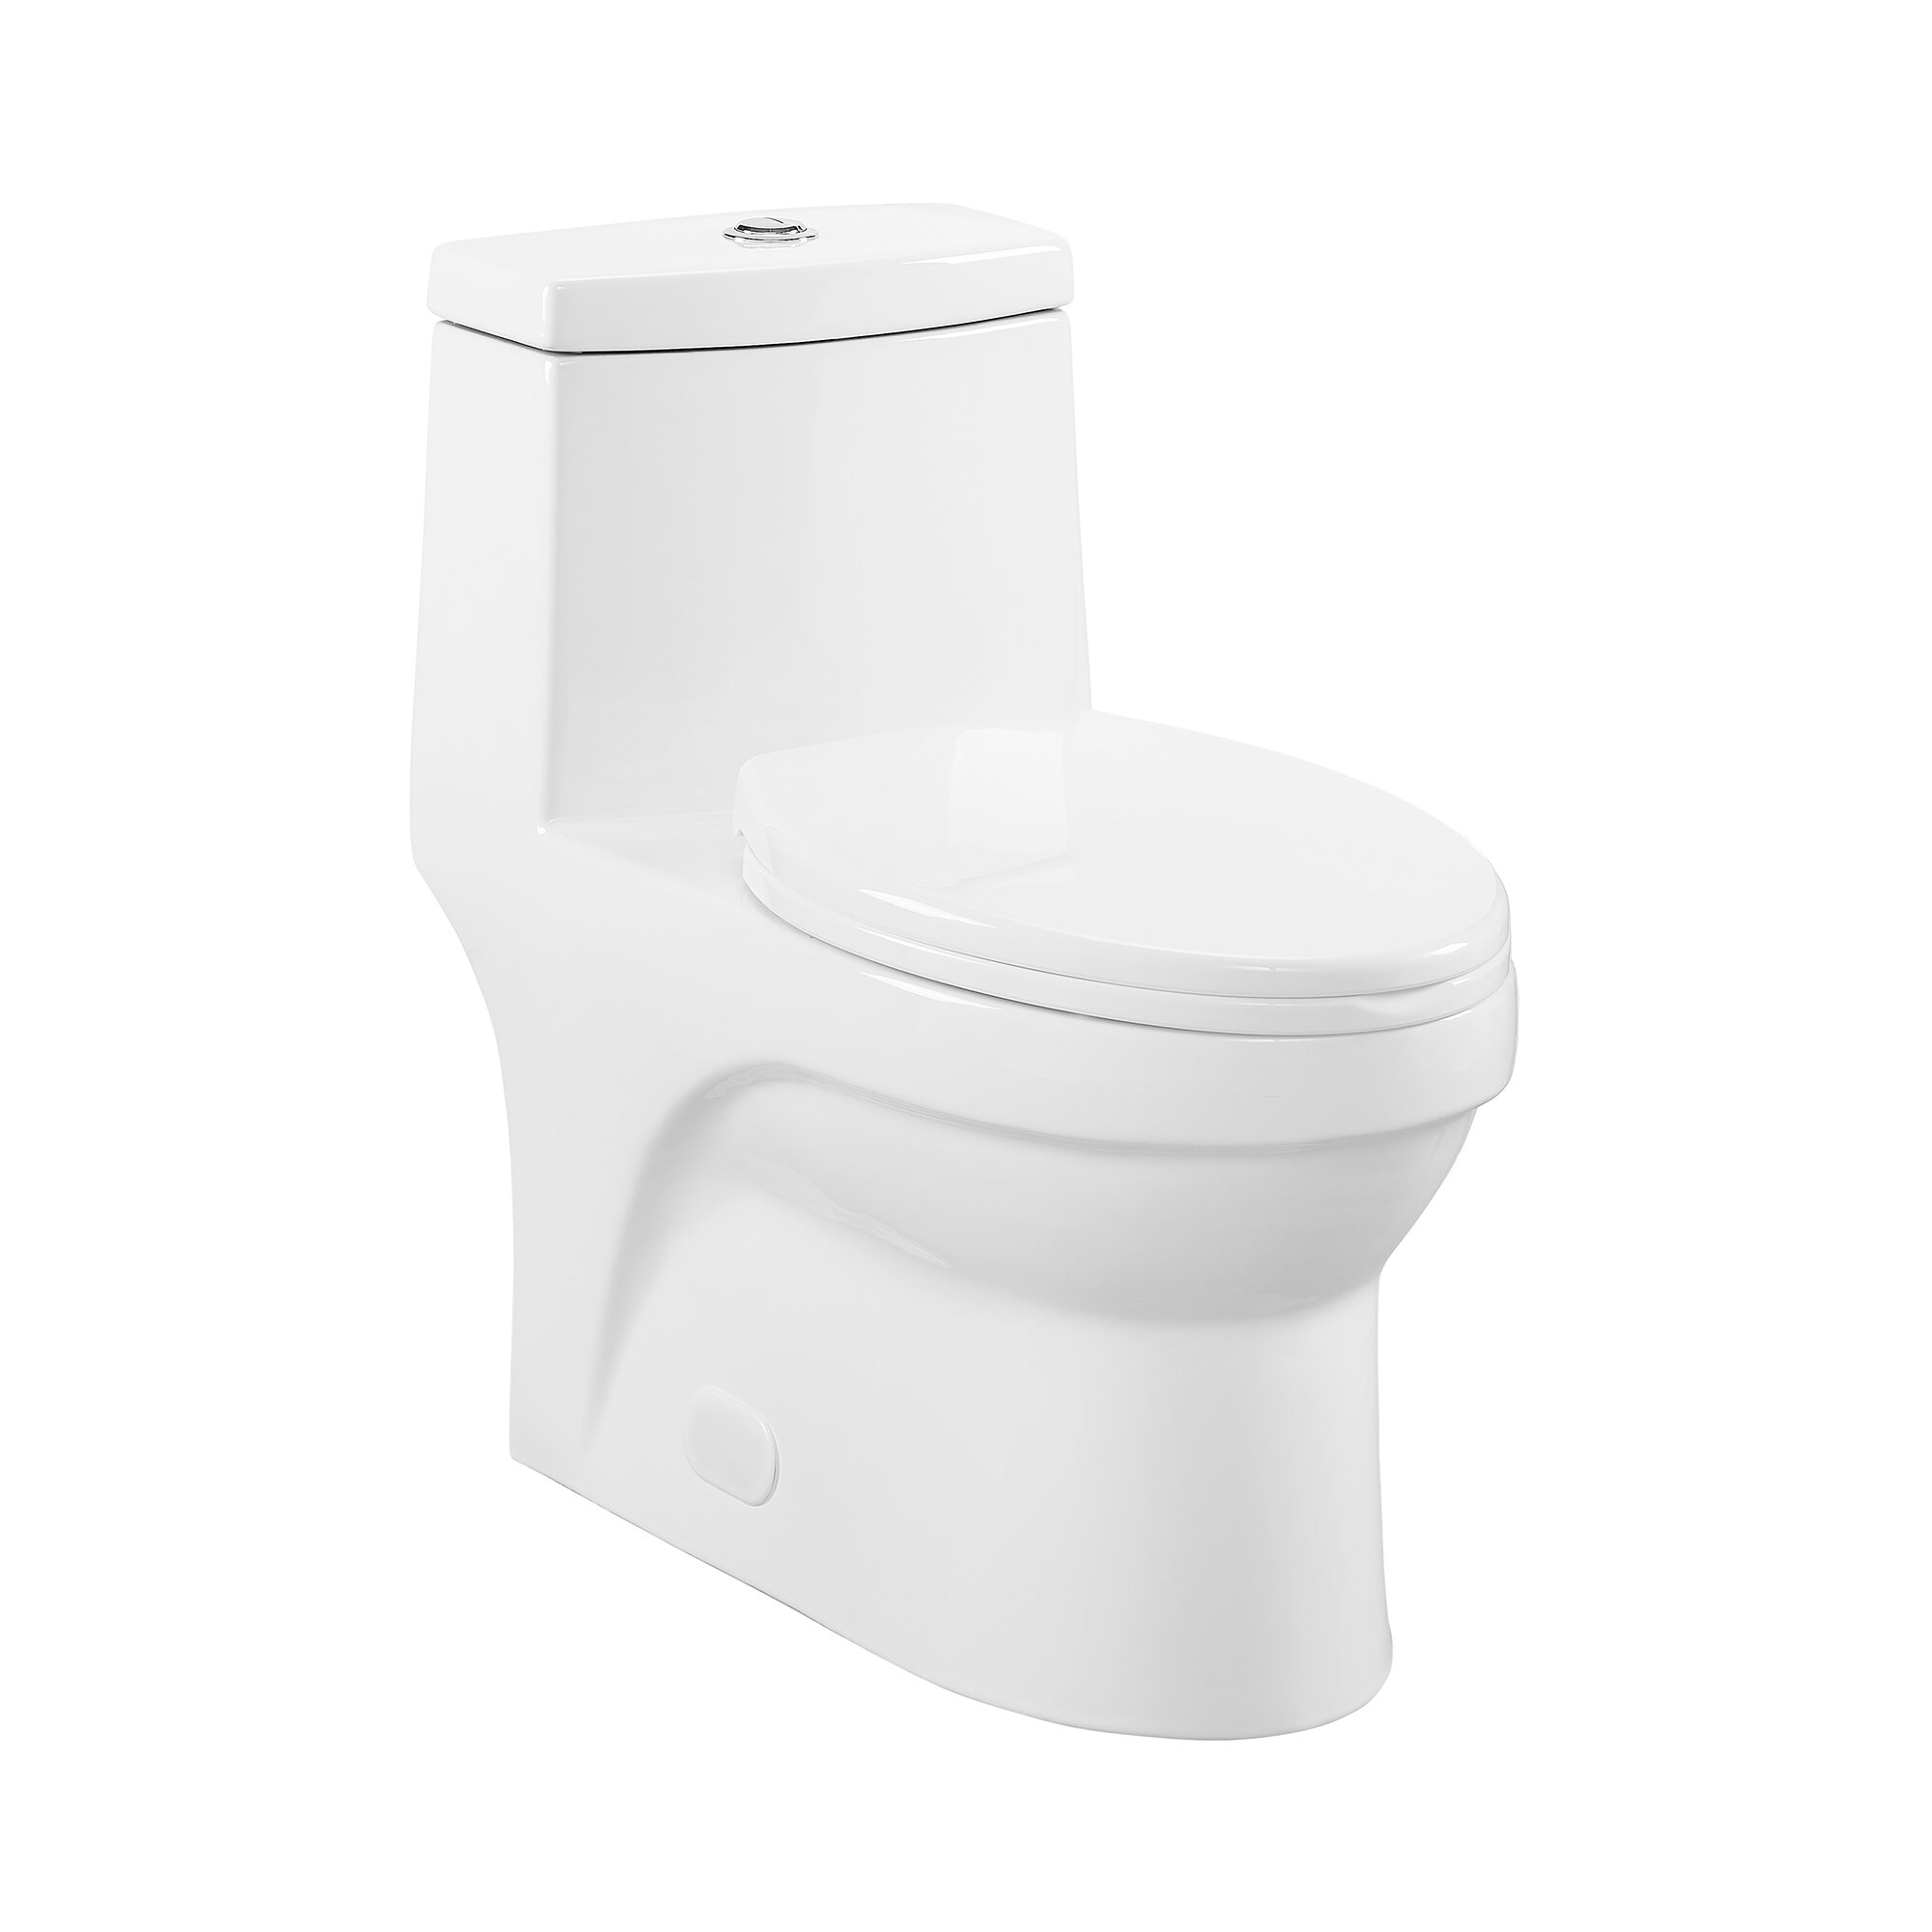 Swiss Madison Virage 1 28 Gpf One Piece Toilet Seat Included Reviews Wayfair